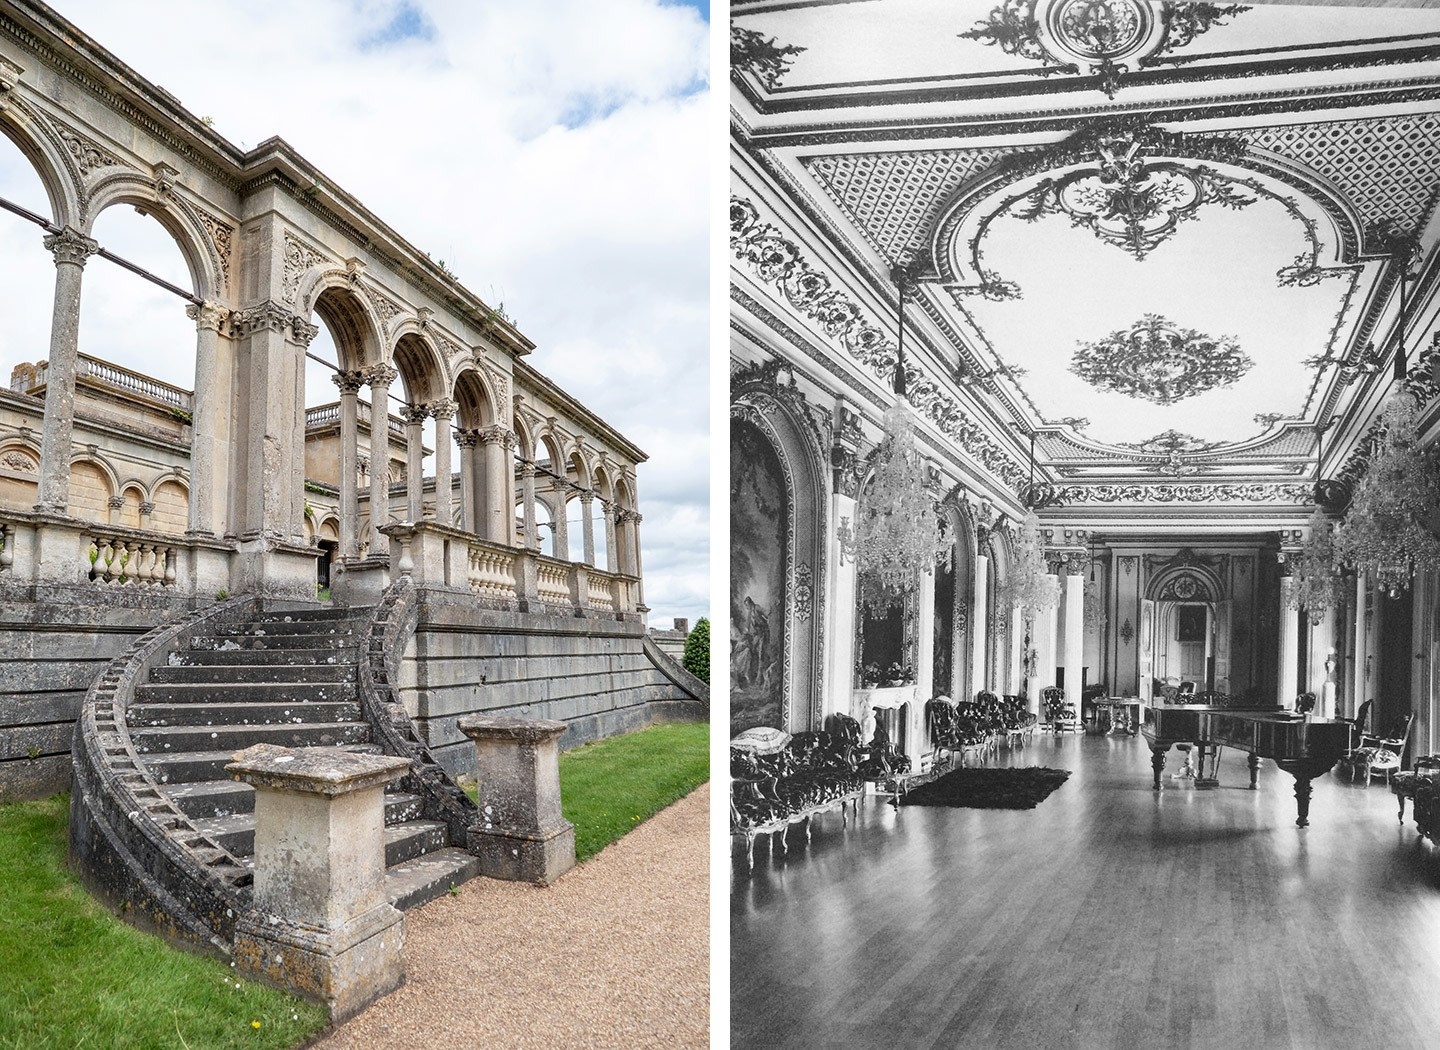 The conservatory/orangery ruins and the ballroom in the heyday of Witley Court